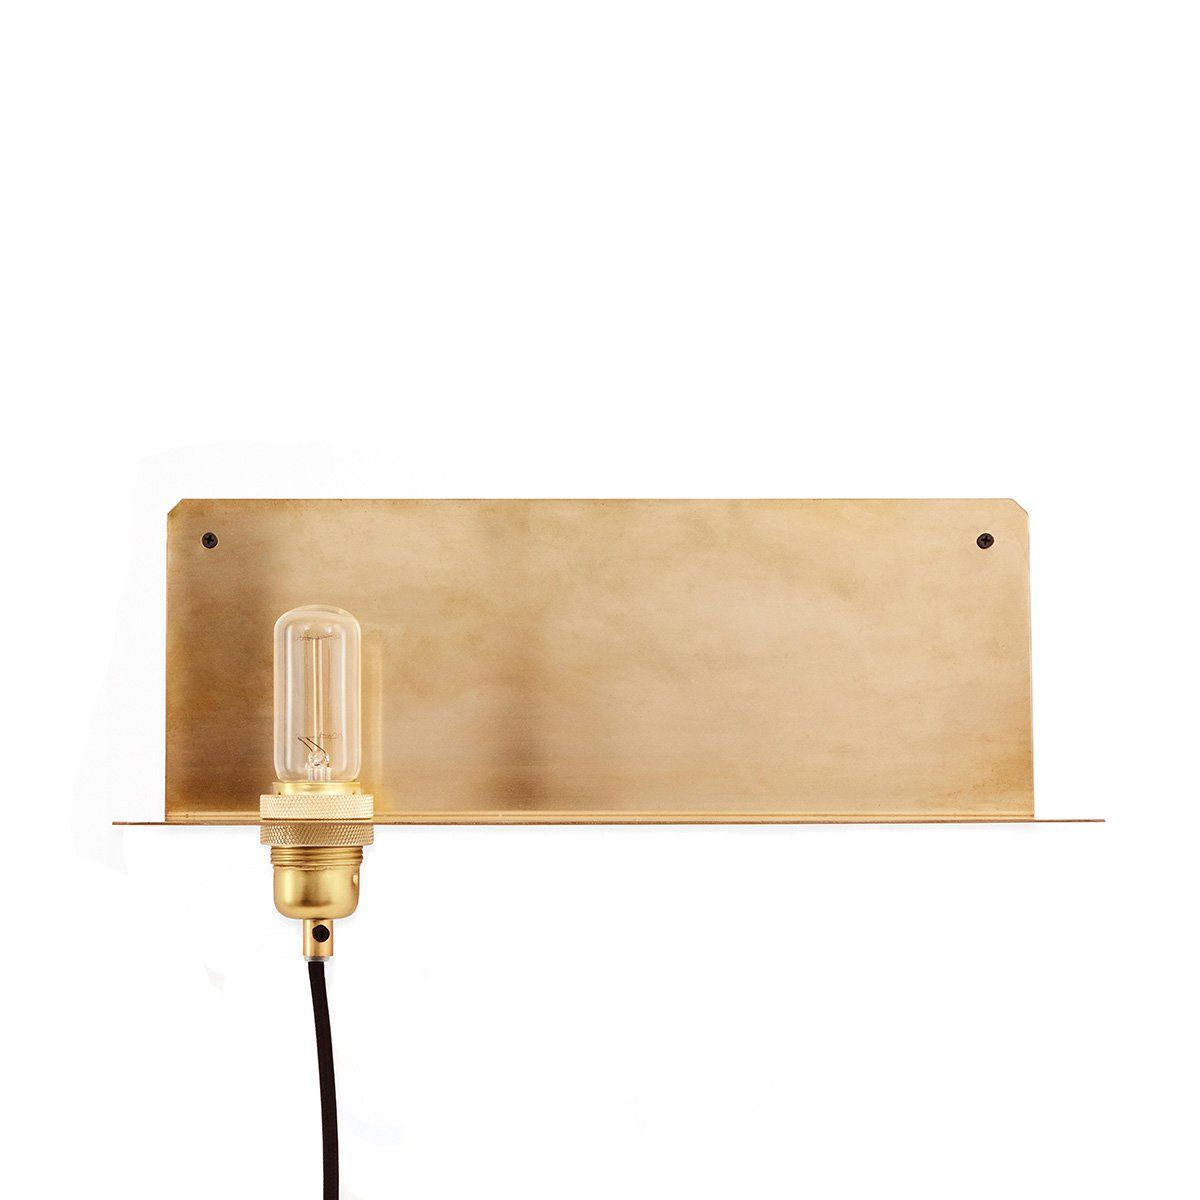 90-Degree Wall Lamp | Small space design, Small shelves and Degree angle